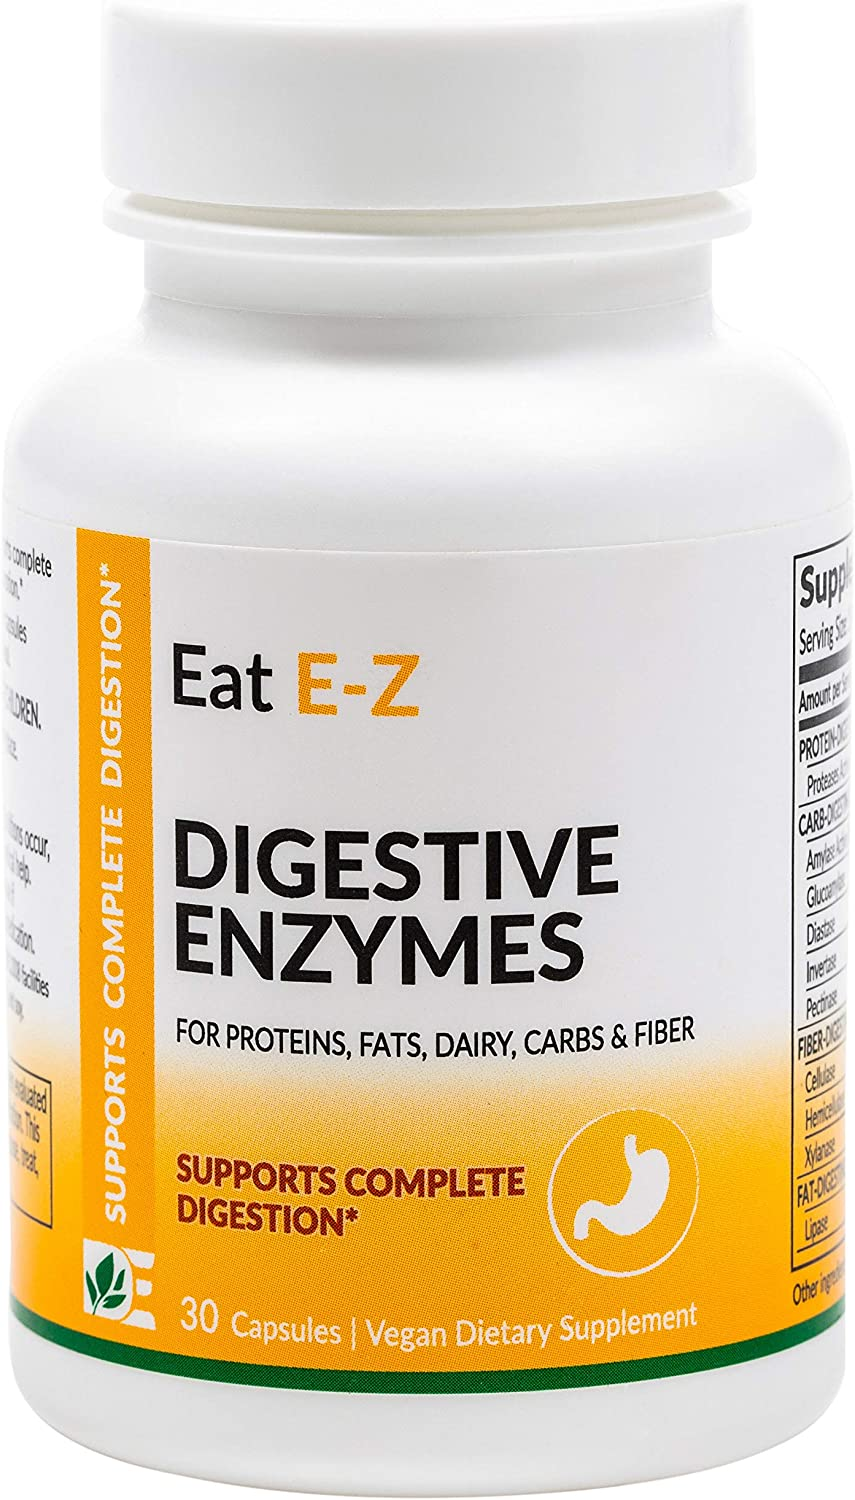 Eat E-Z Original (30 Vegan Capsules) Complete Digestive Enzyme Supplement; Anti-Bloating; Gut Health.